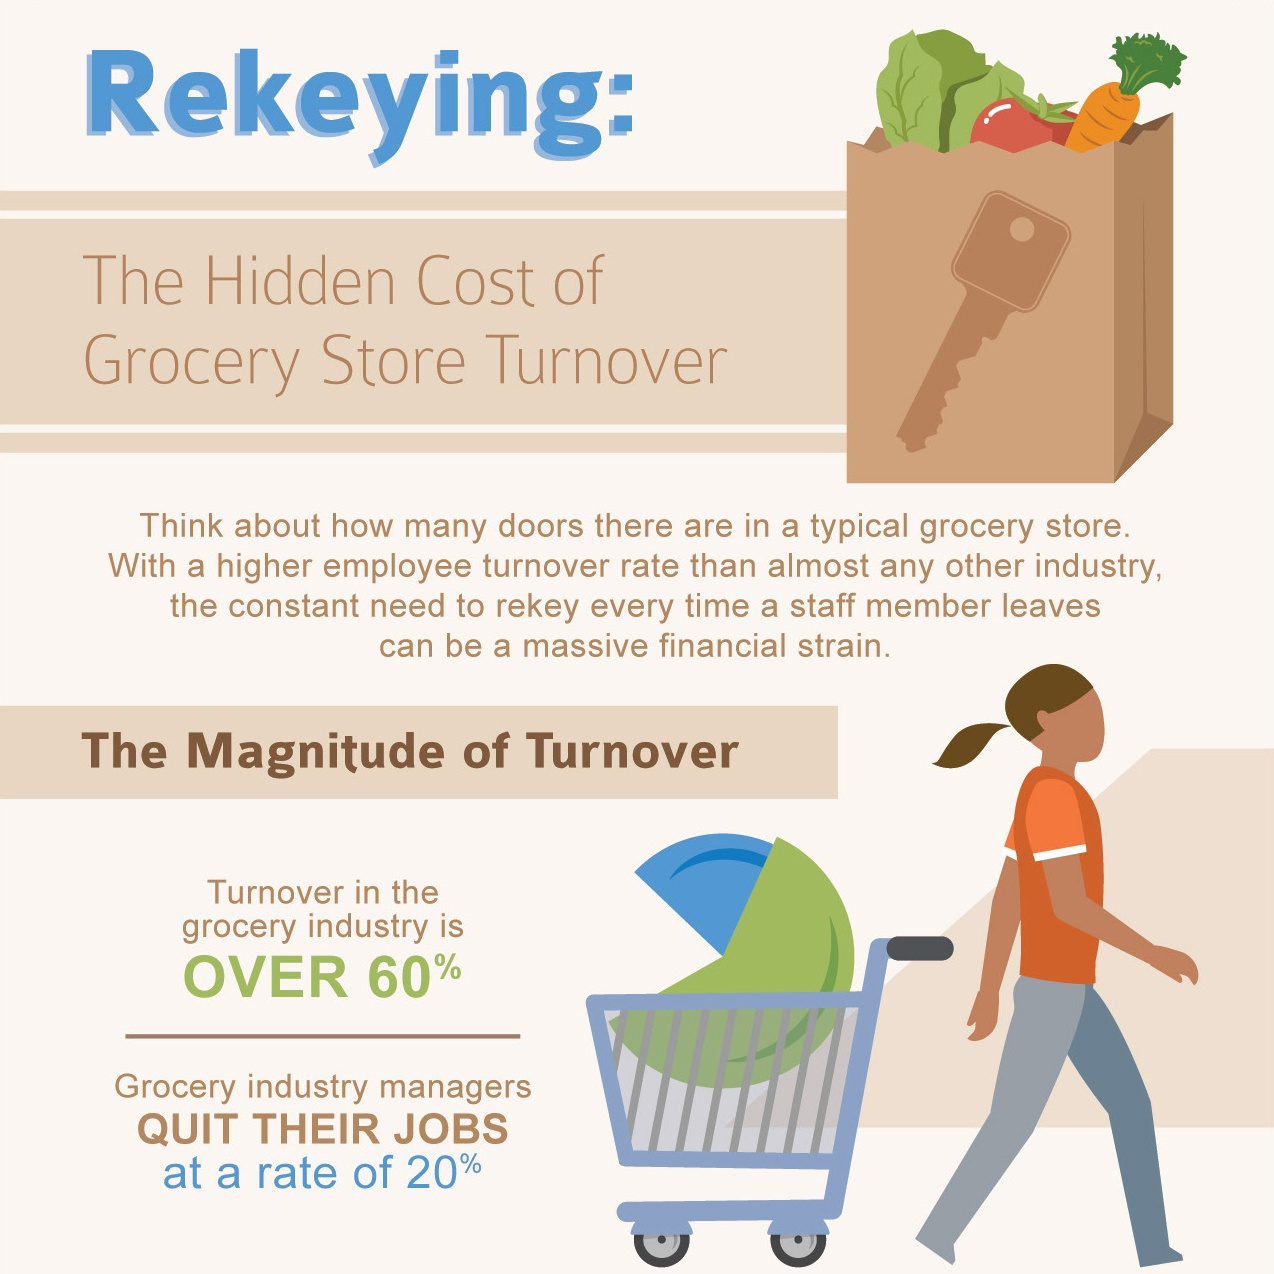 Rekeying: The Hidden Cost of Grocery Store Turnover